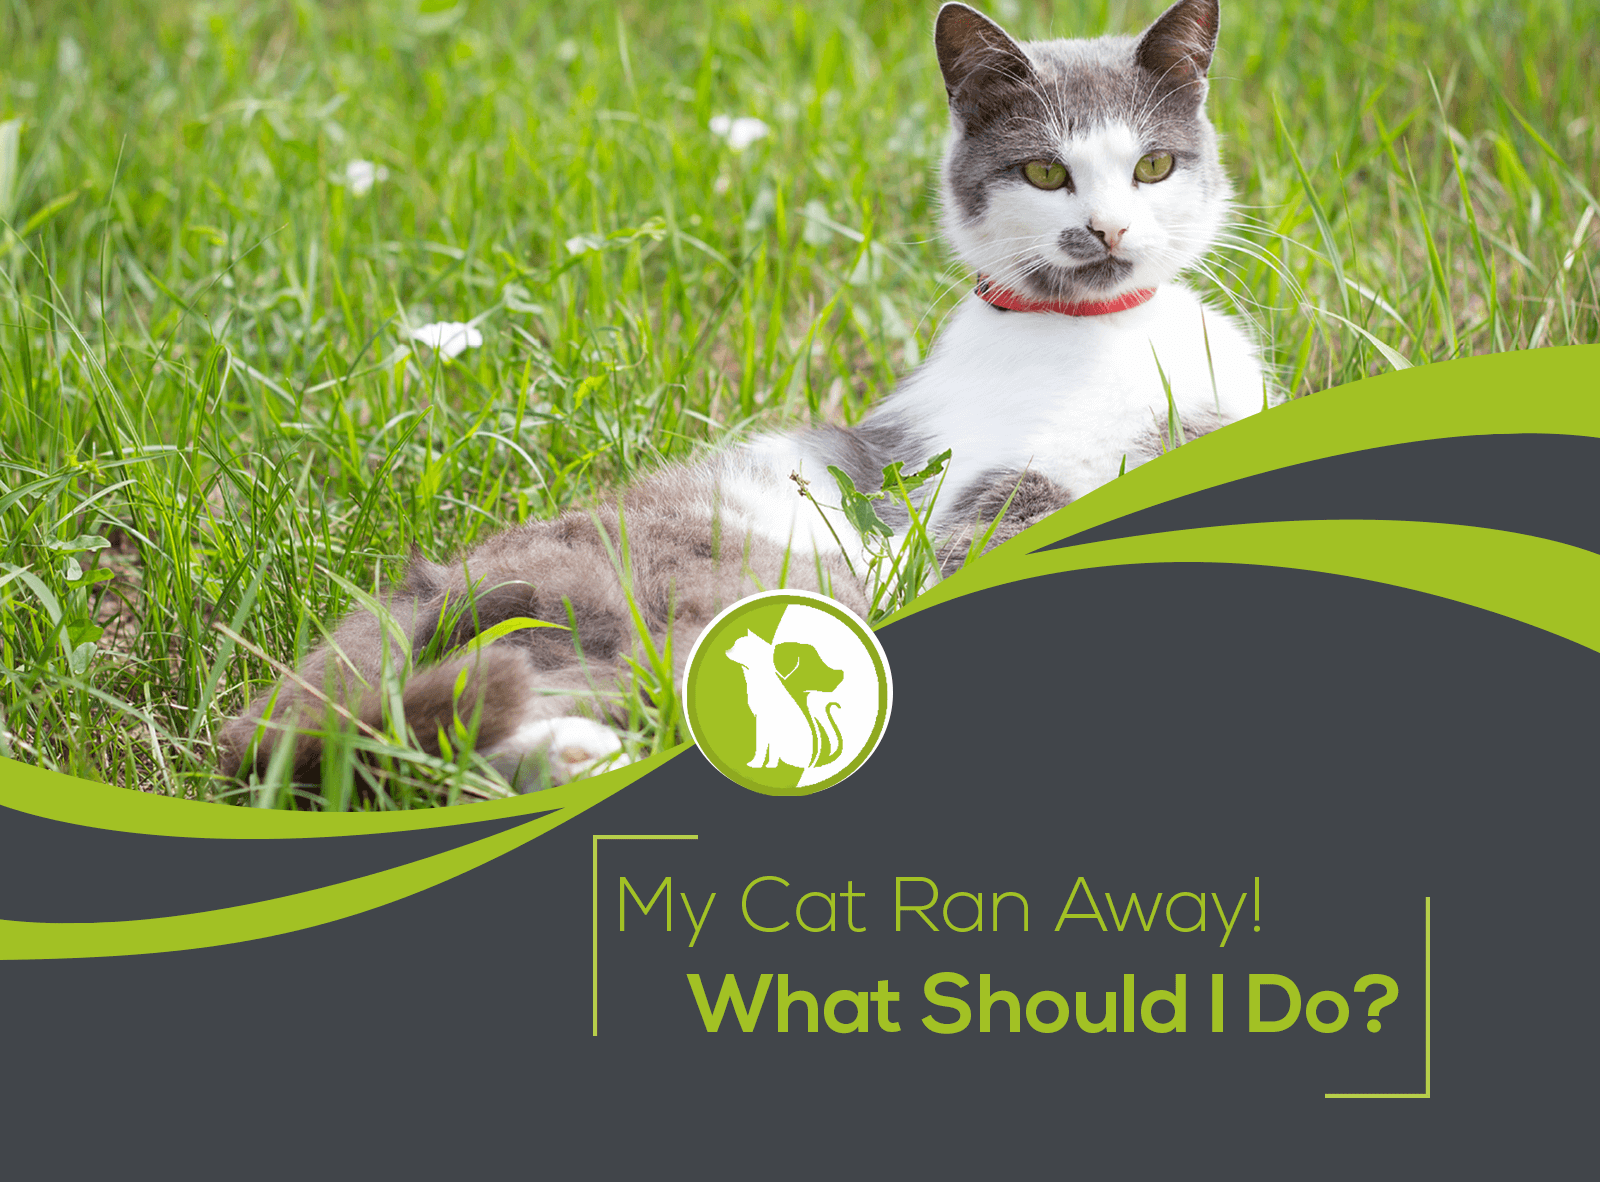 My Cat Ran Away! What Should I Do?